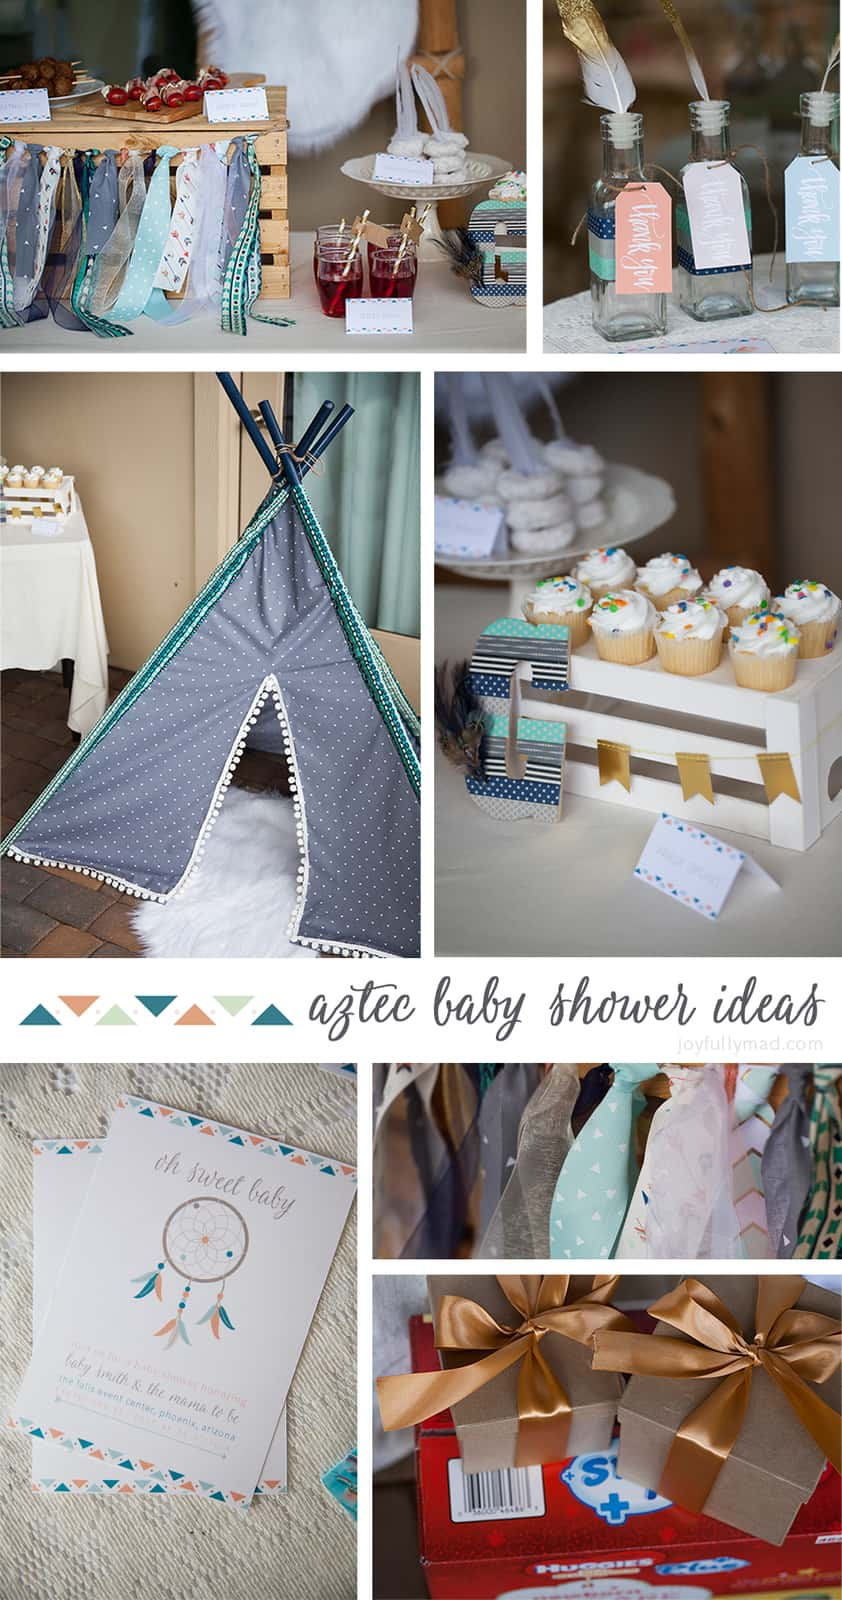 Aztec Baby Shower Ideas